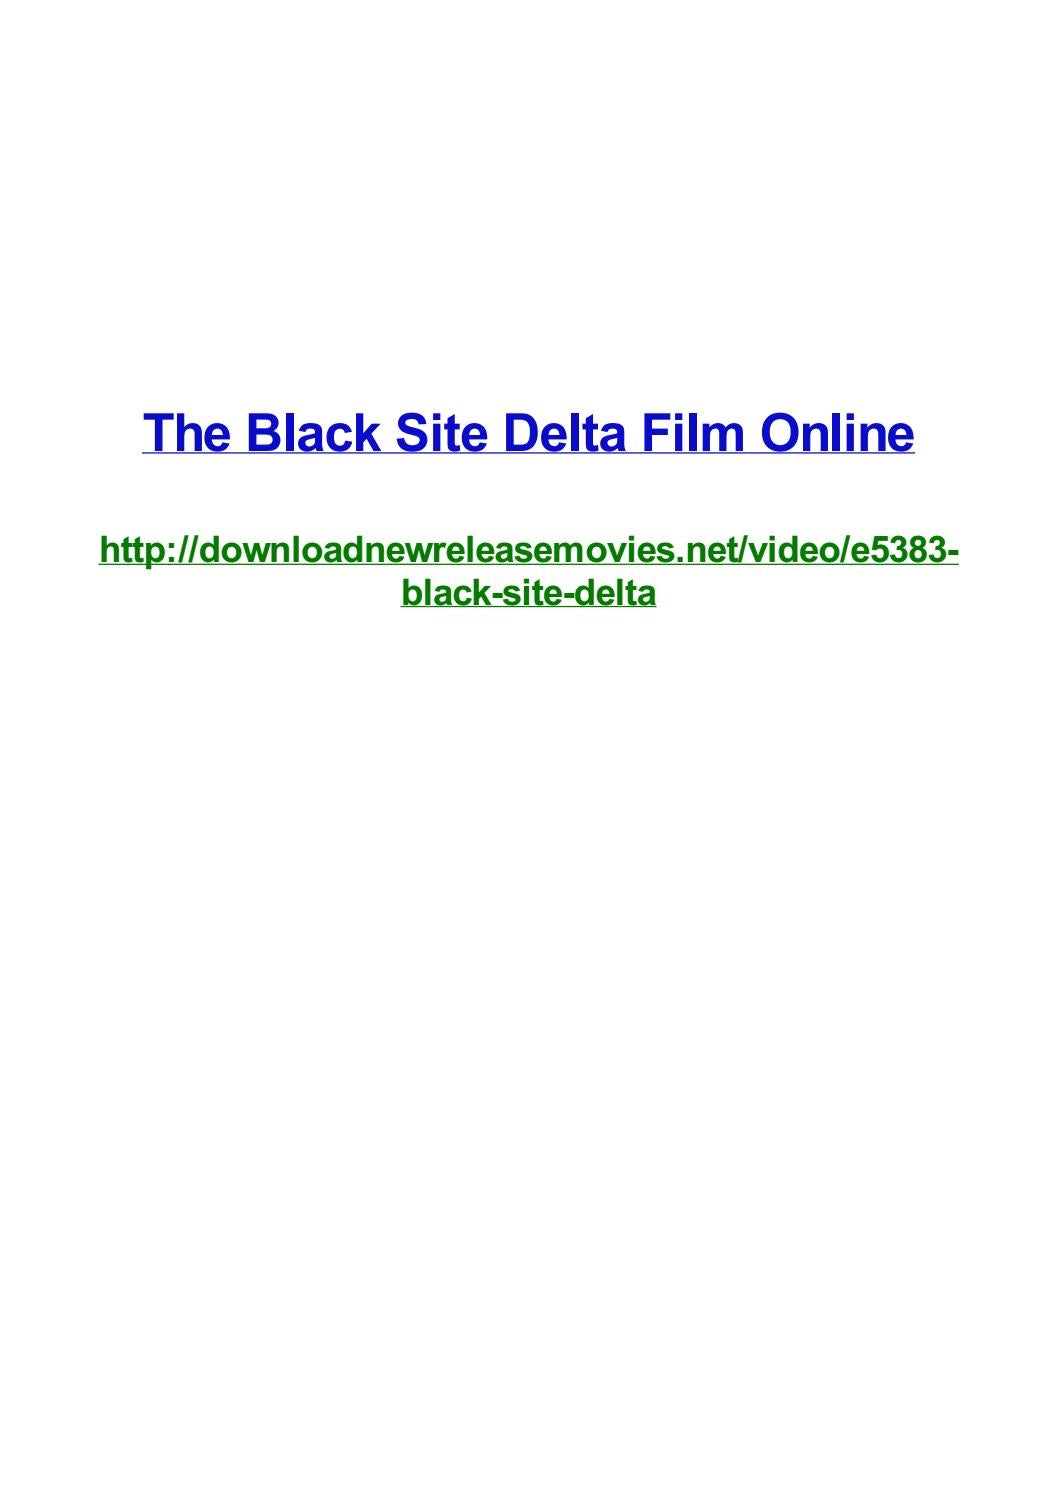 The Black Site Delta Film Online By Frank Seamons Issuu